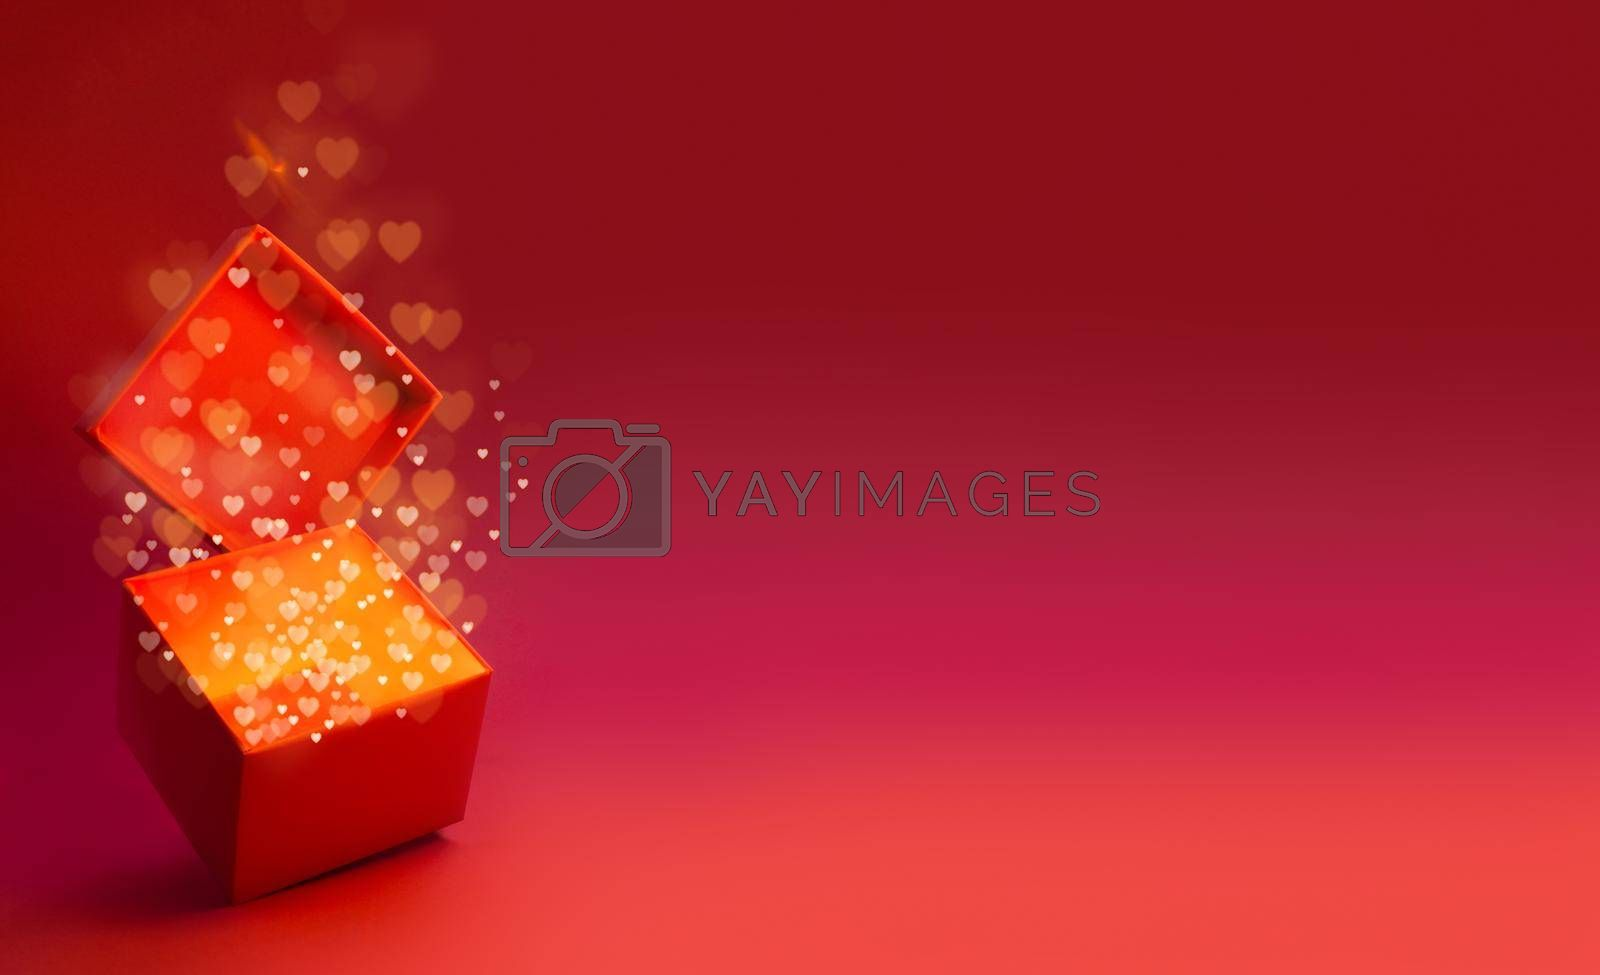 Magic box with love gift for Valentines day, pink red glowing with light from inside with bokeh hearts on glitter background with copy space for text